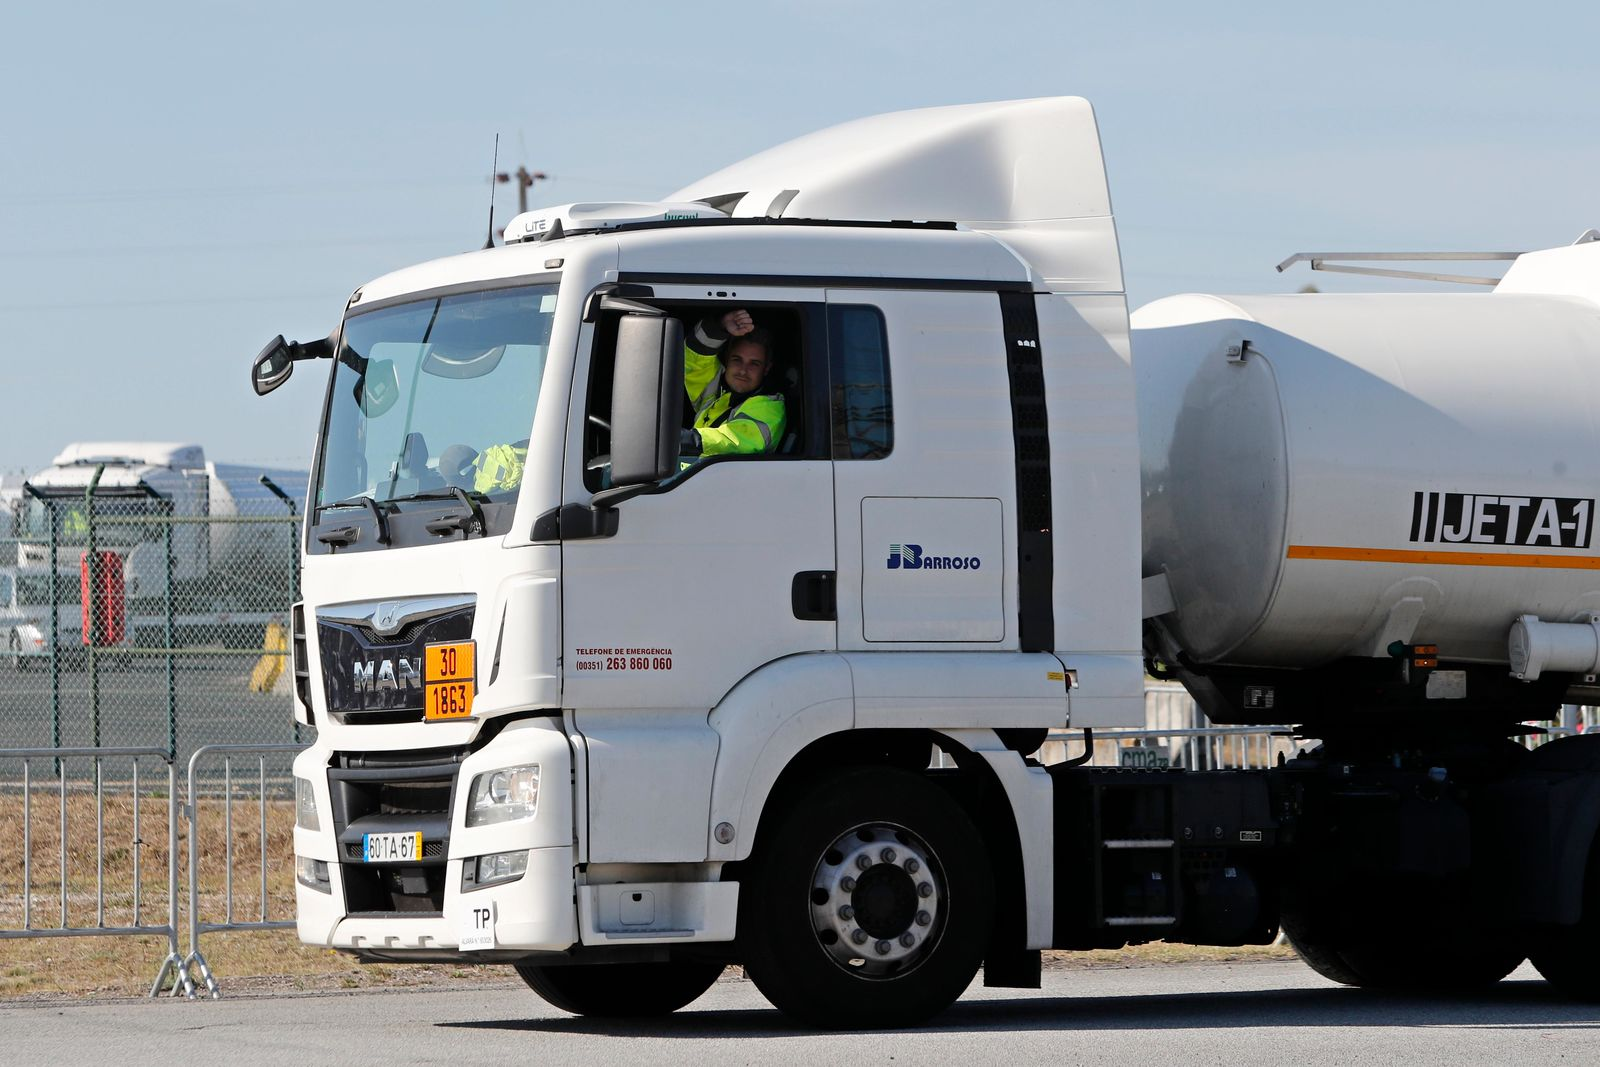 The driver of a jet fuel truck gestures to cheering truck drivers standing outside a fuel depot in Aveiras, outside Lisbon, Monday, Aug. 12, 2019.{ } gallons) for customers at gas stations until further notice. (AP Photo/Armando Franca)